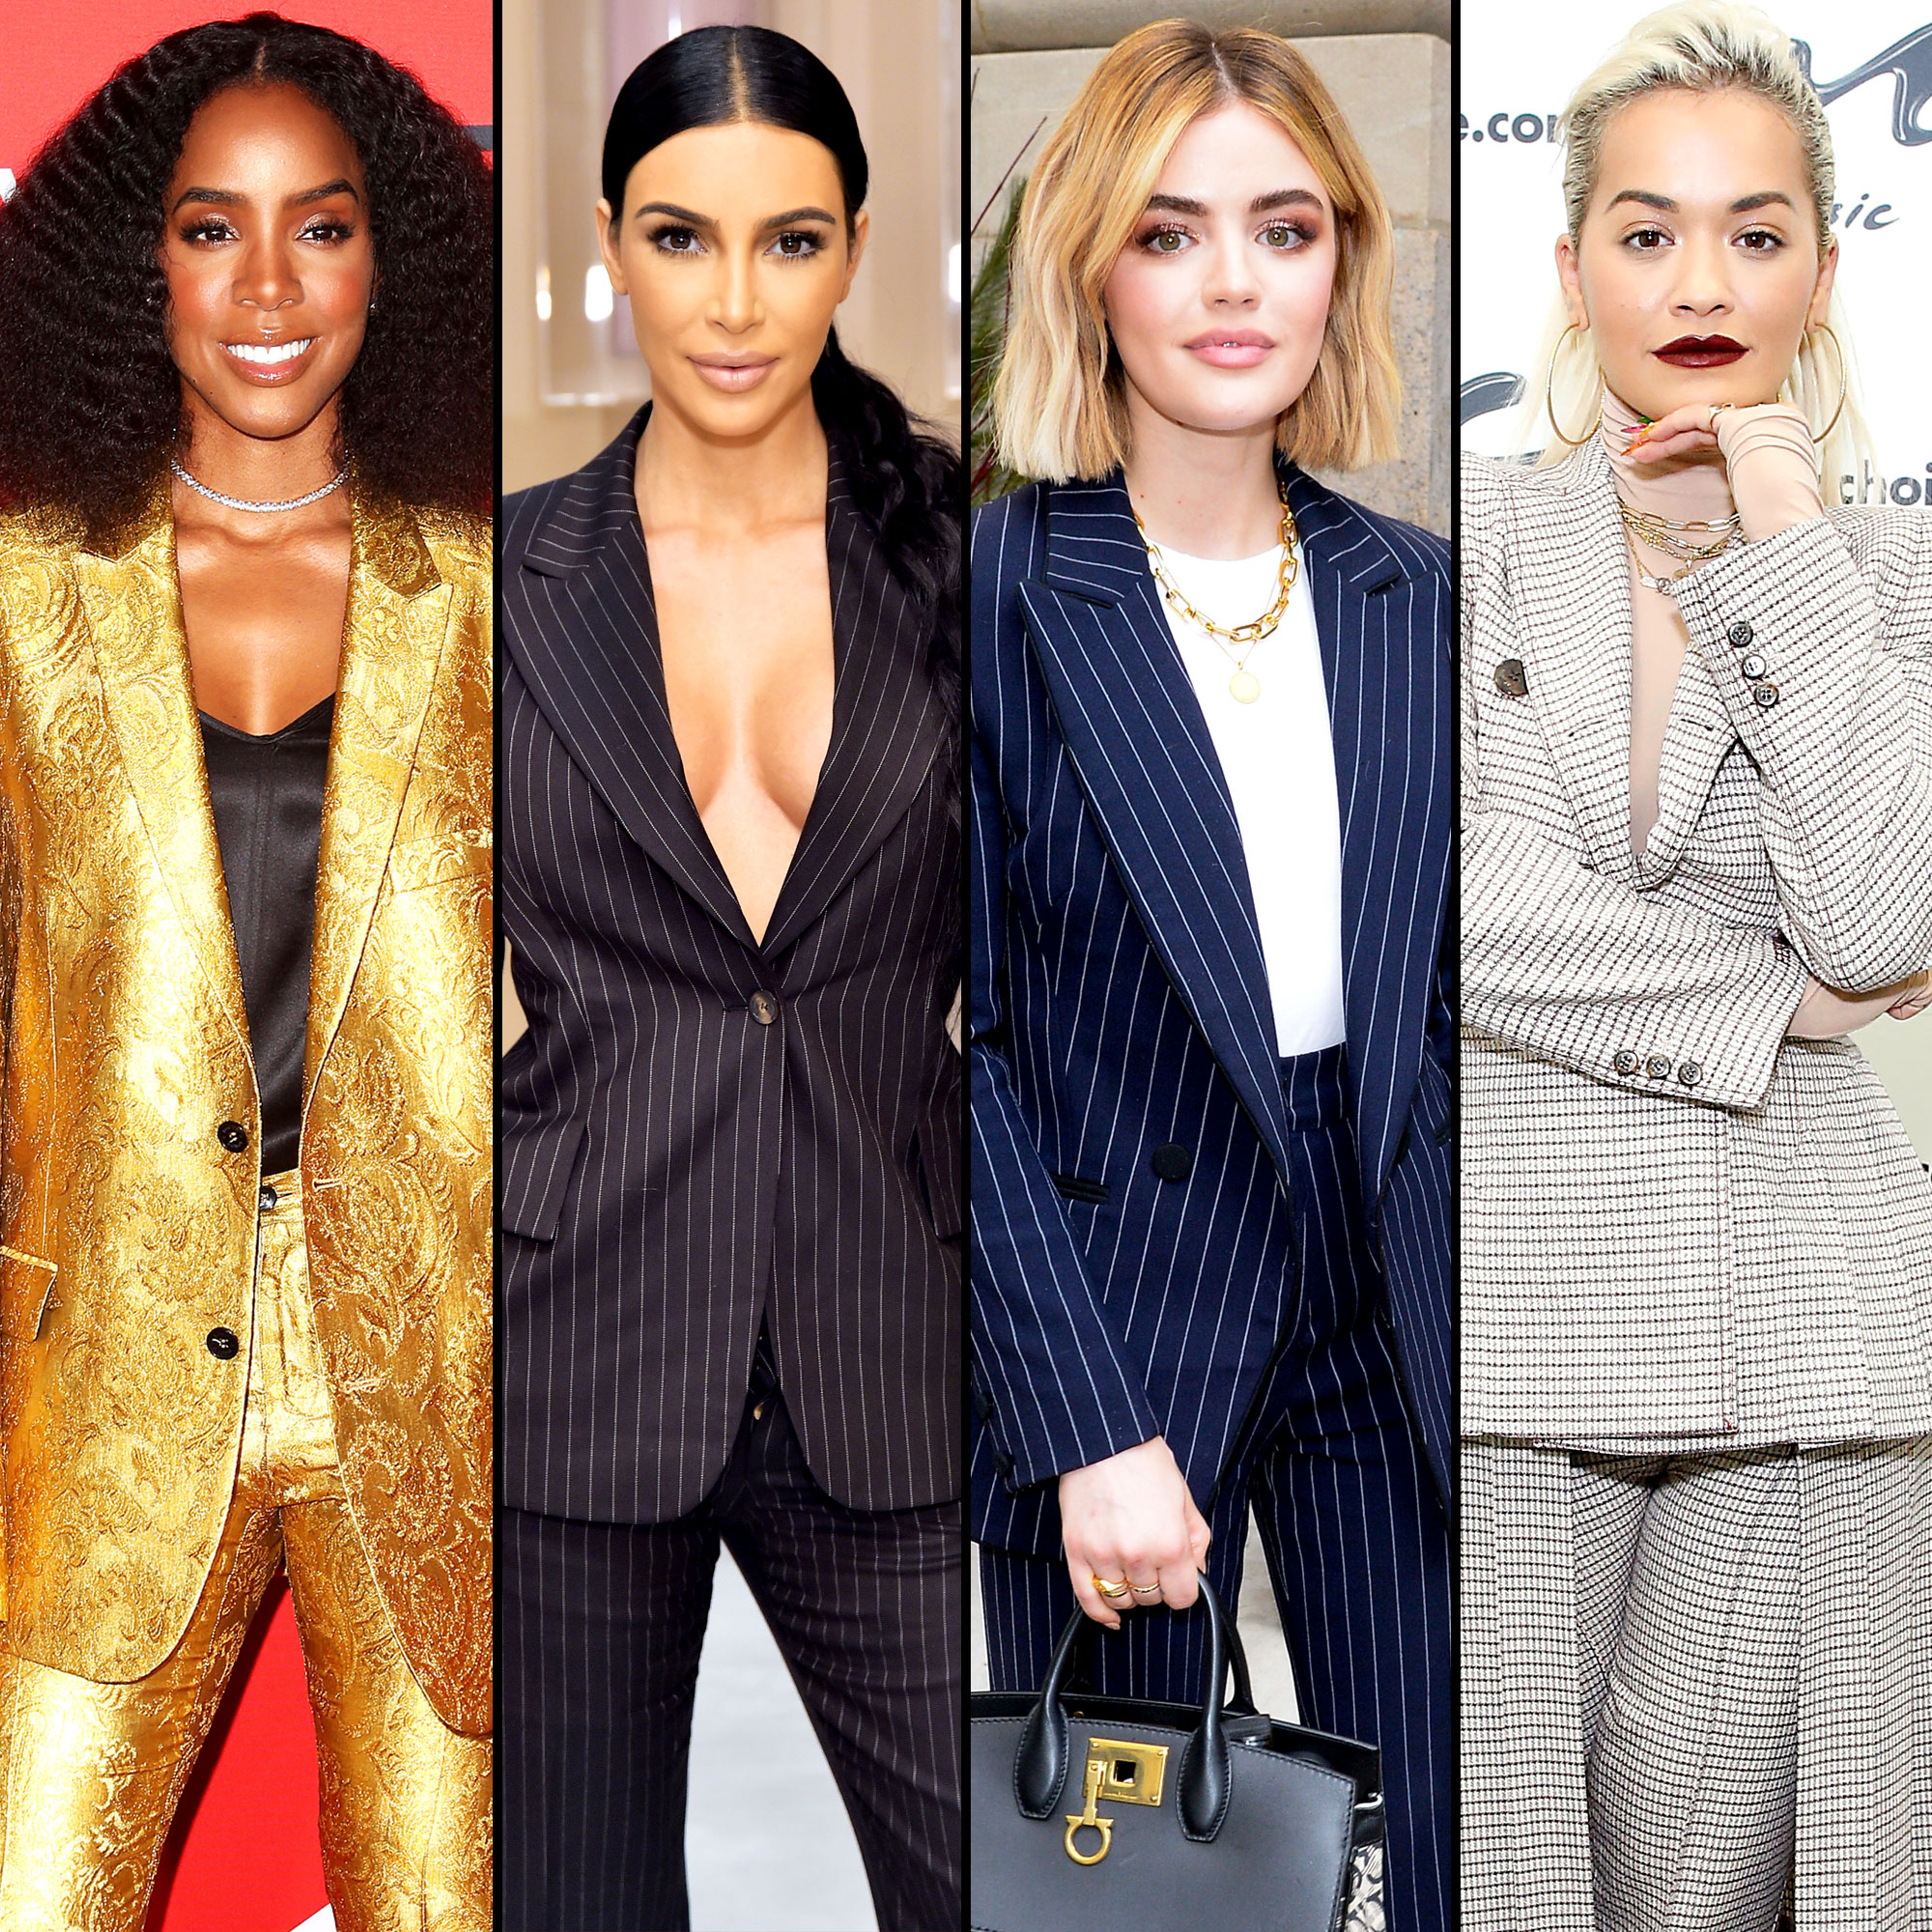 Kelly Rowland, Kim Kardashian, Lucy Hale and Rita Ora - She wears the pants! Jennifer Aniston , Kim Kardashian and more celebs have traded in their gowns for pantsuits and stunned on and off of the red carpet.